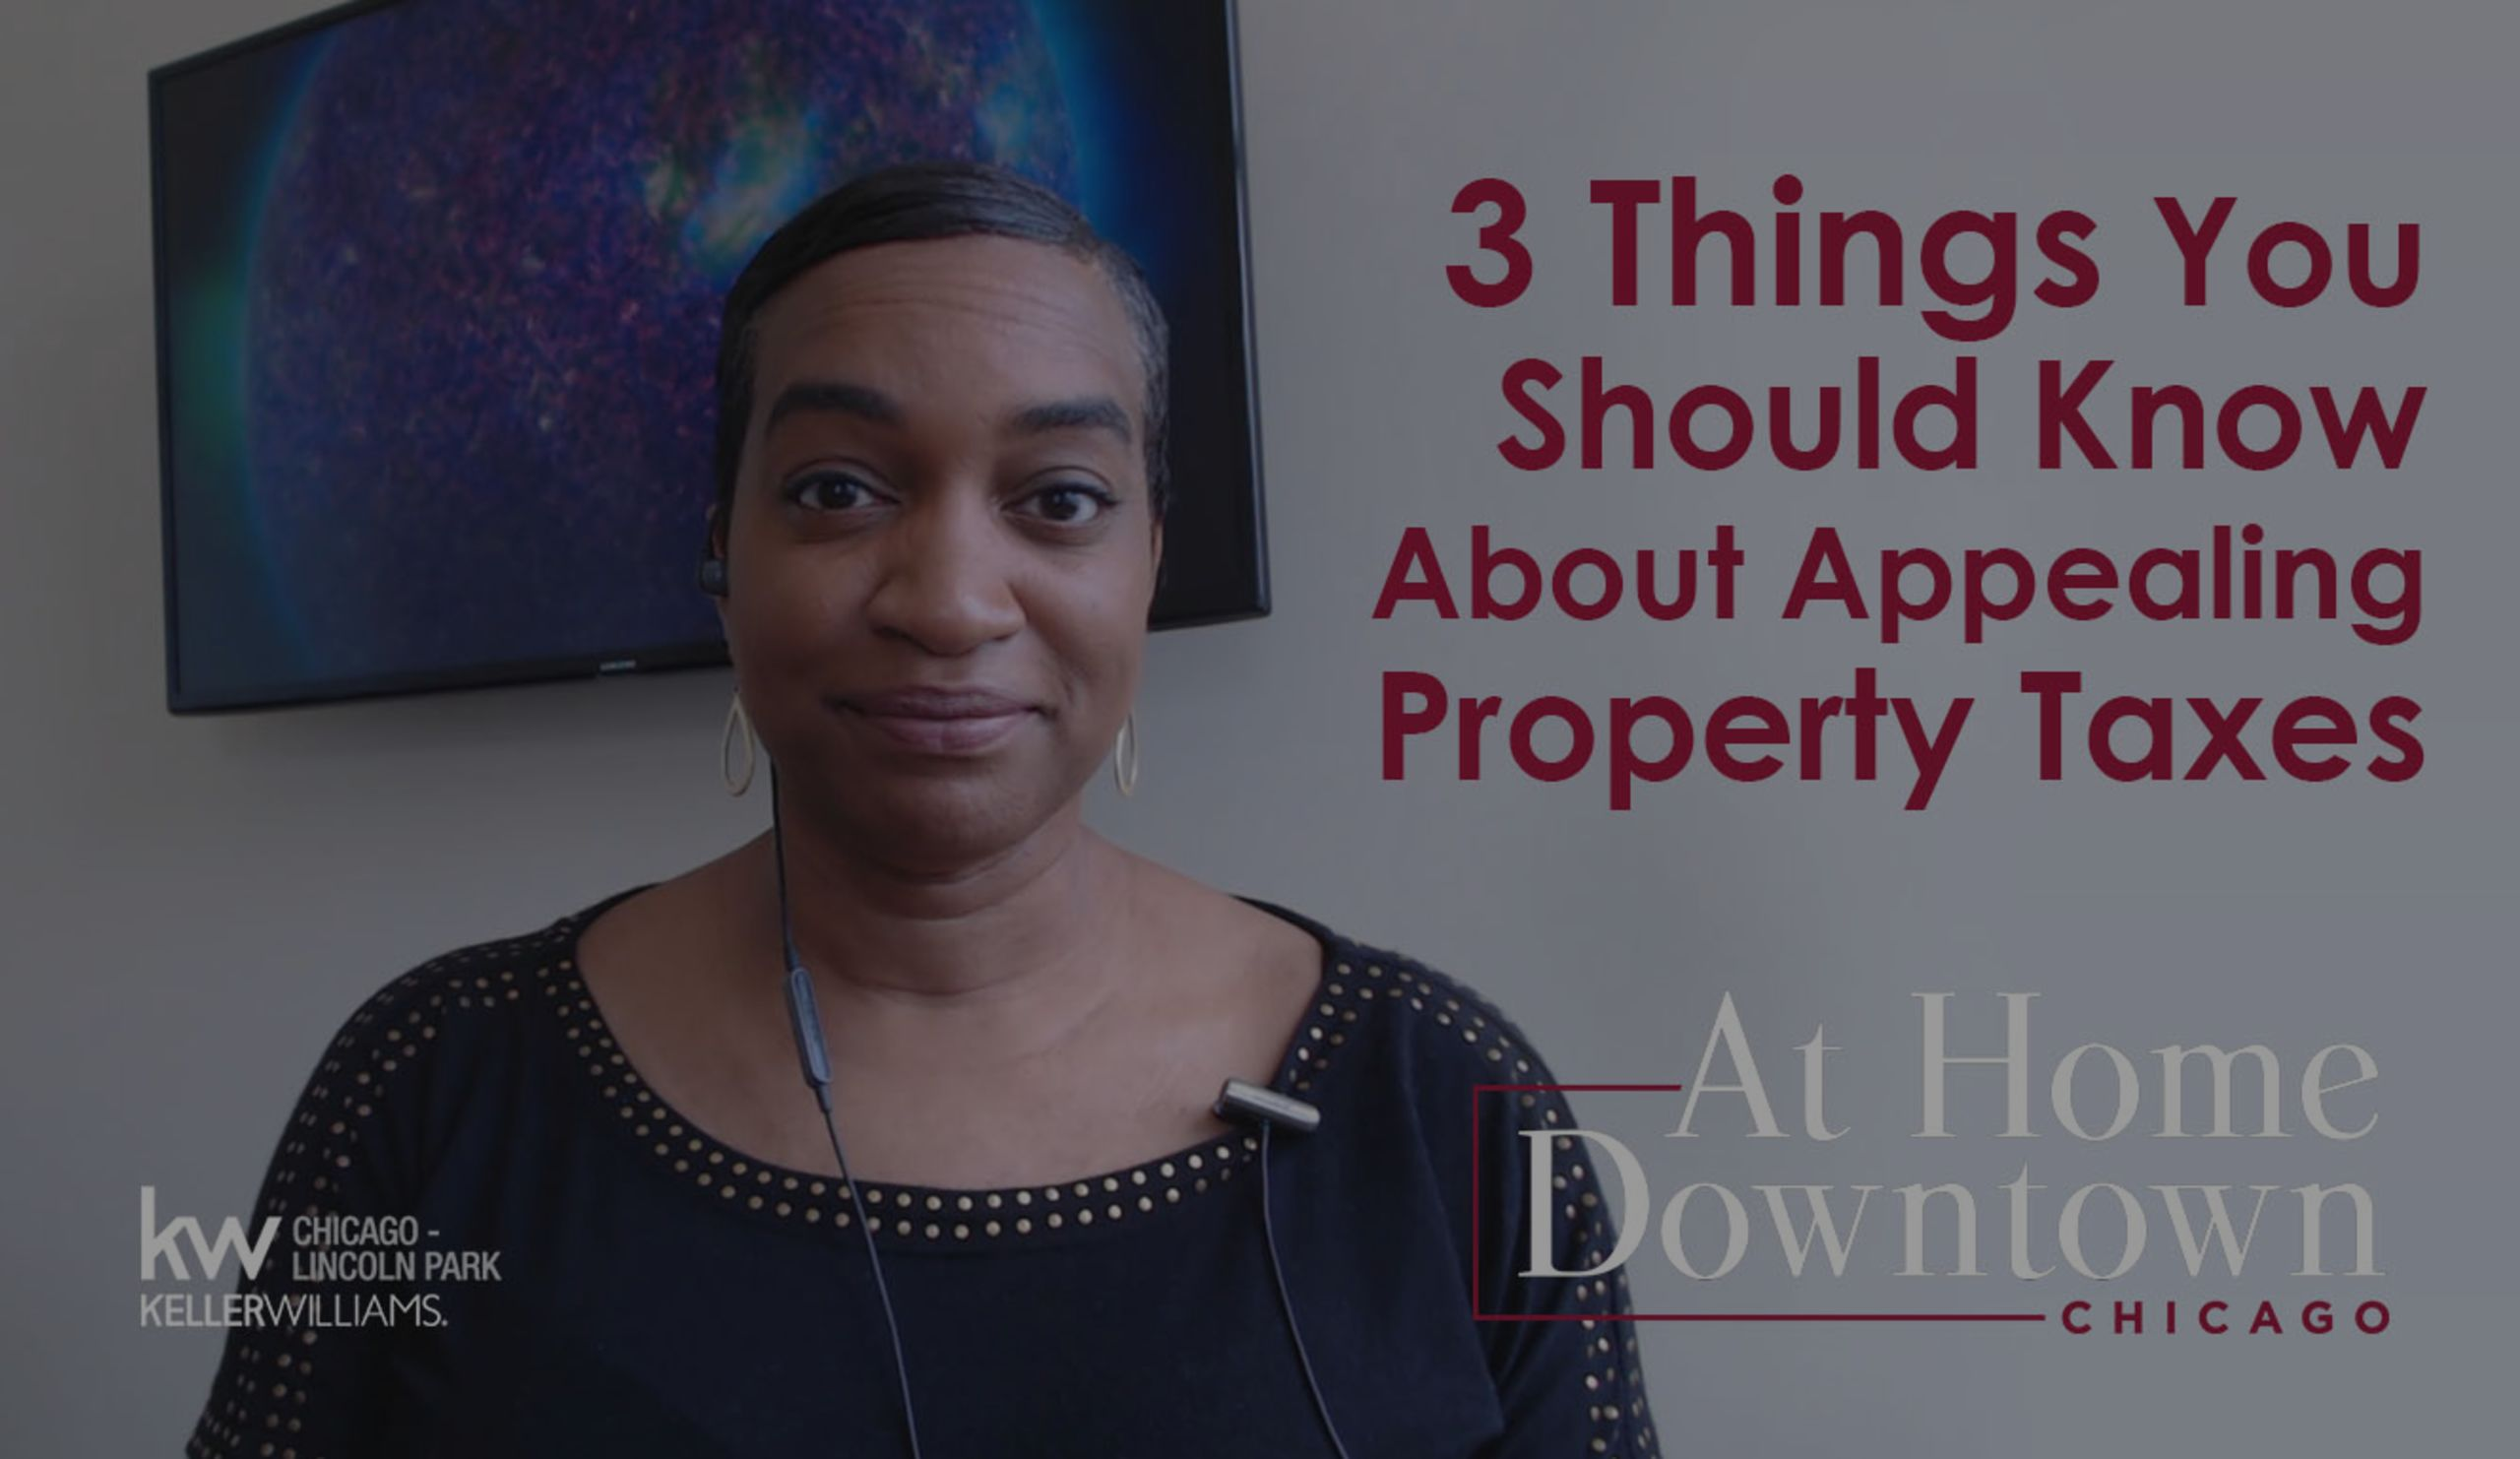 3 Important Things to Consider About Appealing Property Taxes